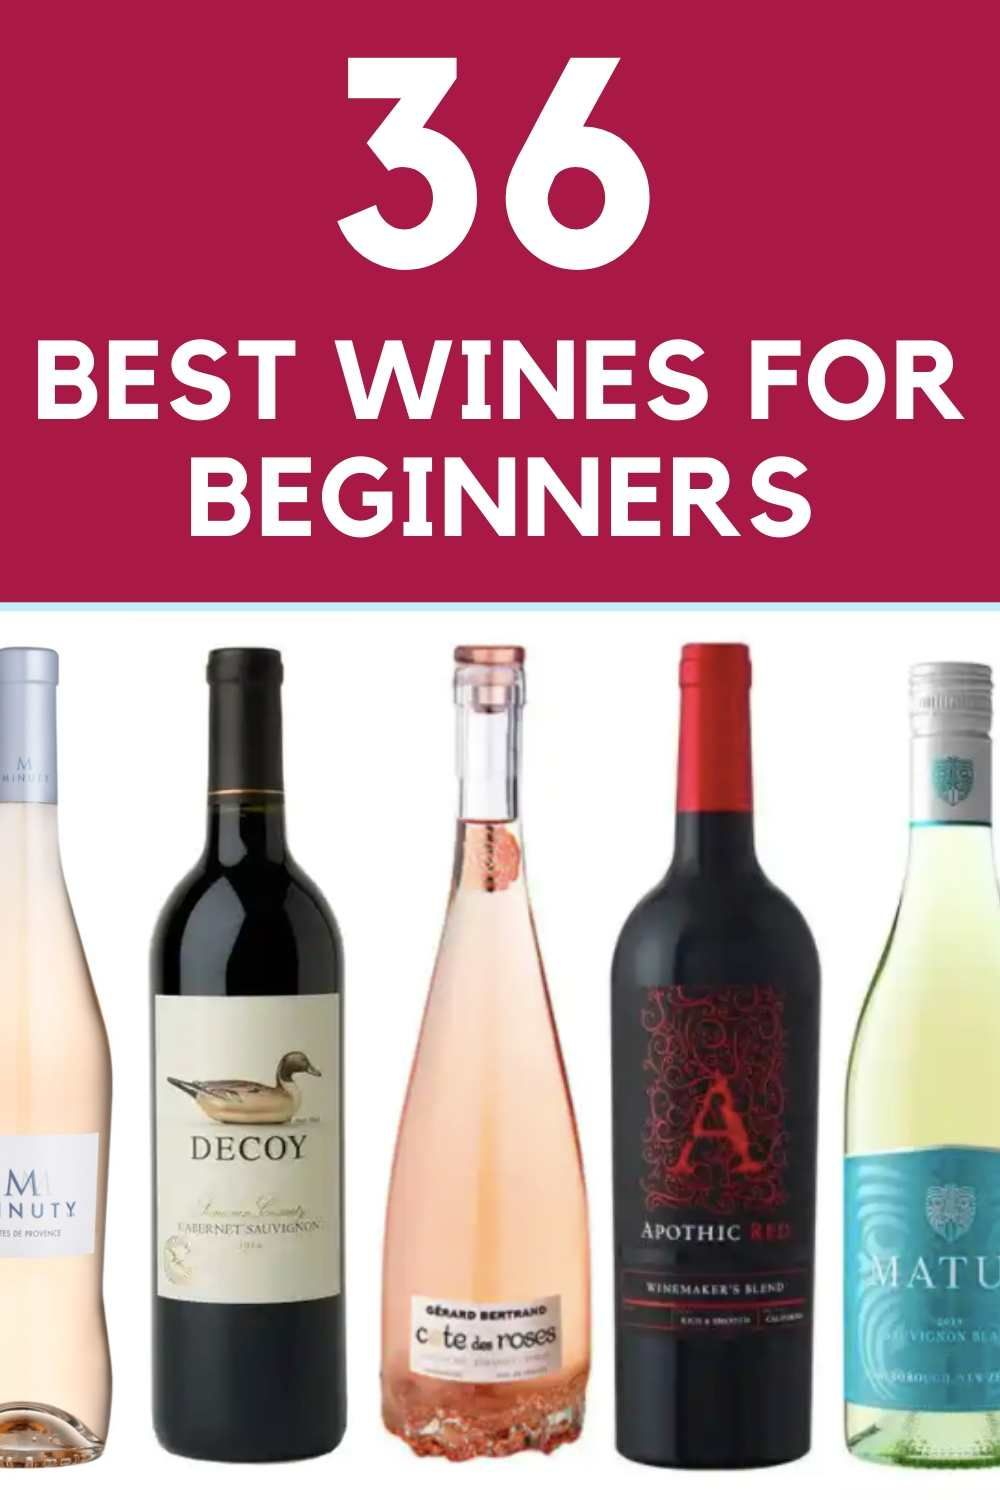 Best Wines For Beginners Favorite Affordable Wine Best Red Wine Best White Wine Best Rose Wine In 2020 Best Rose Wine Sweet Wines For Beginners Good Wine Brands